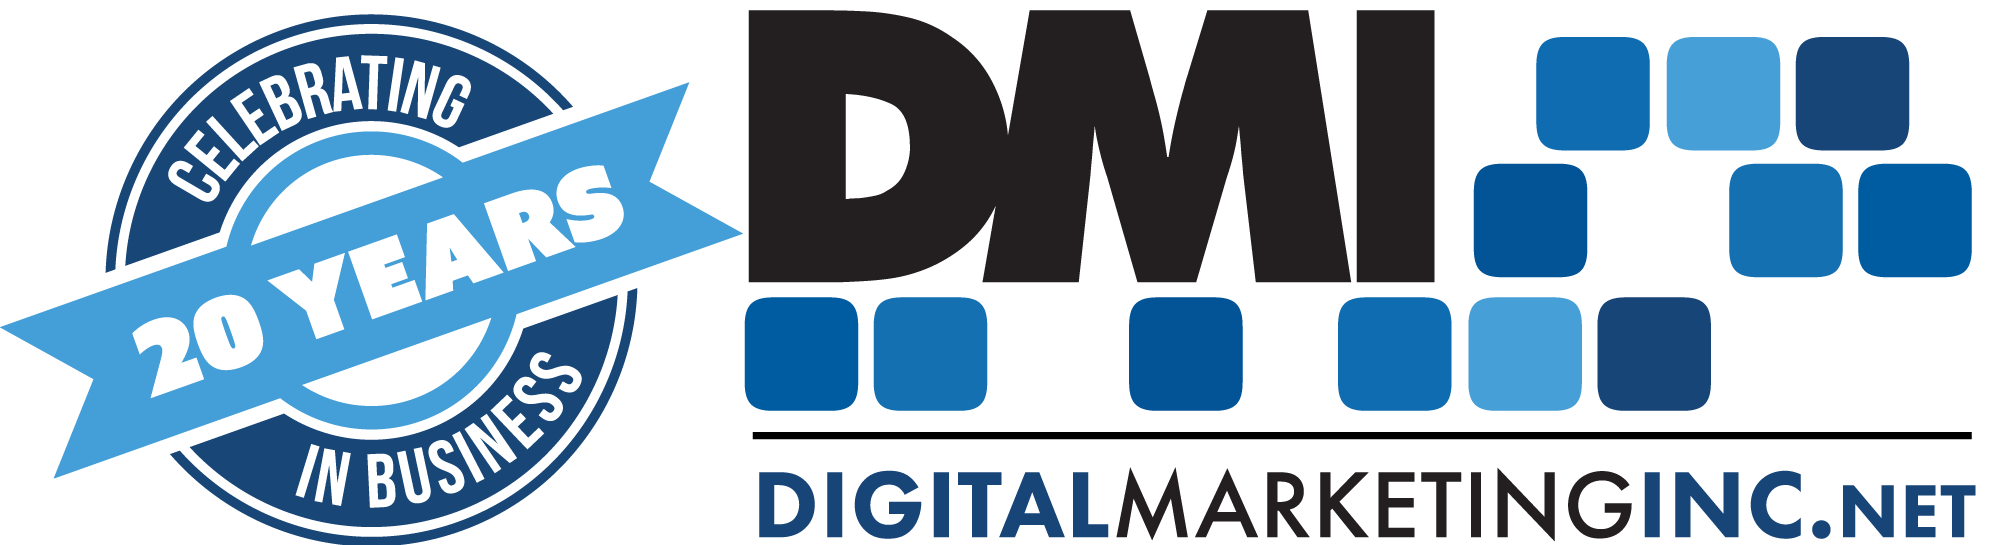 Digital Marketing, Inc. Logo